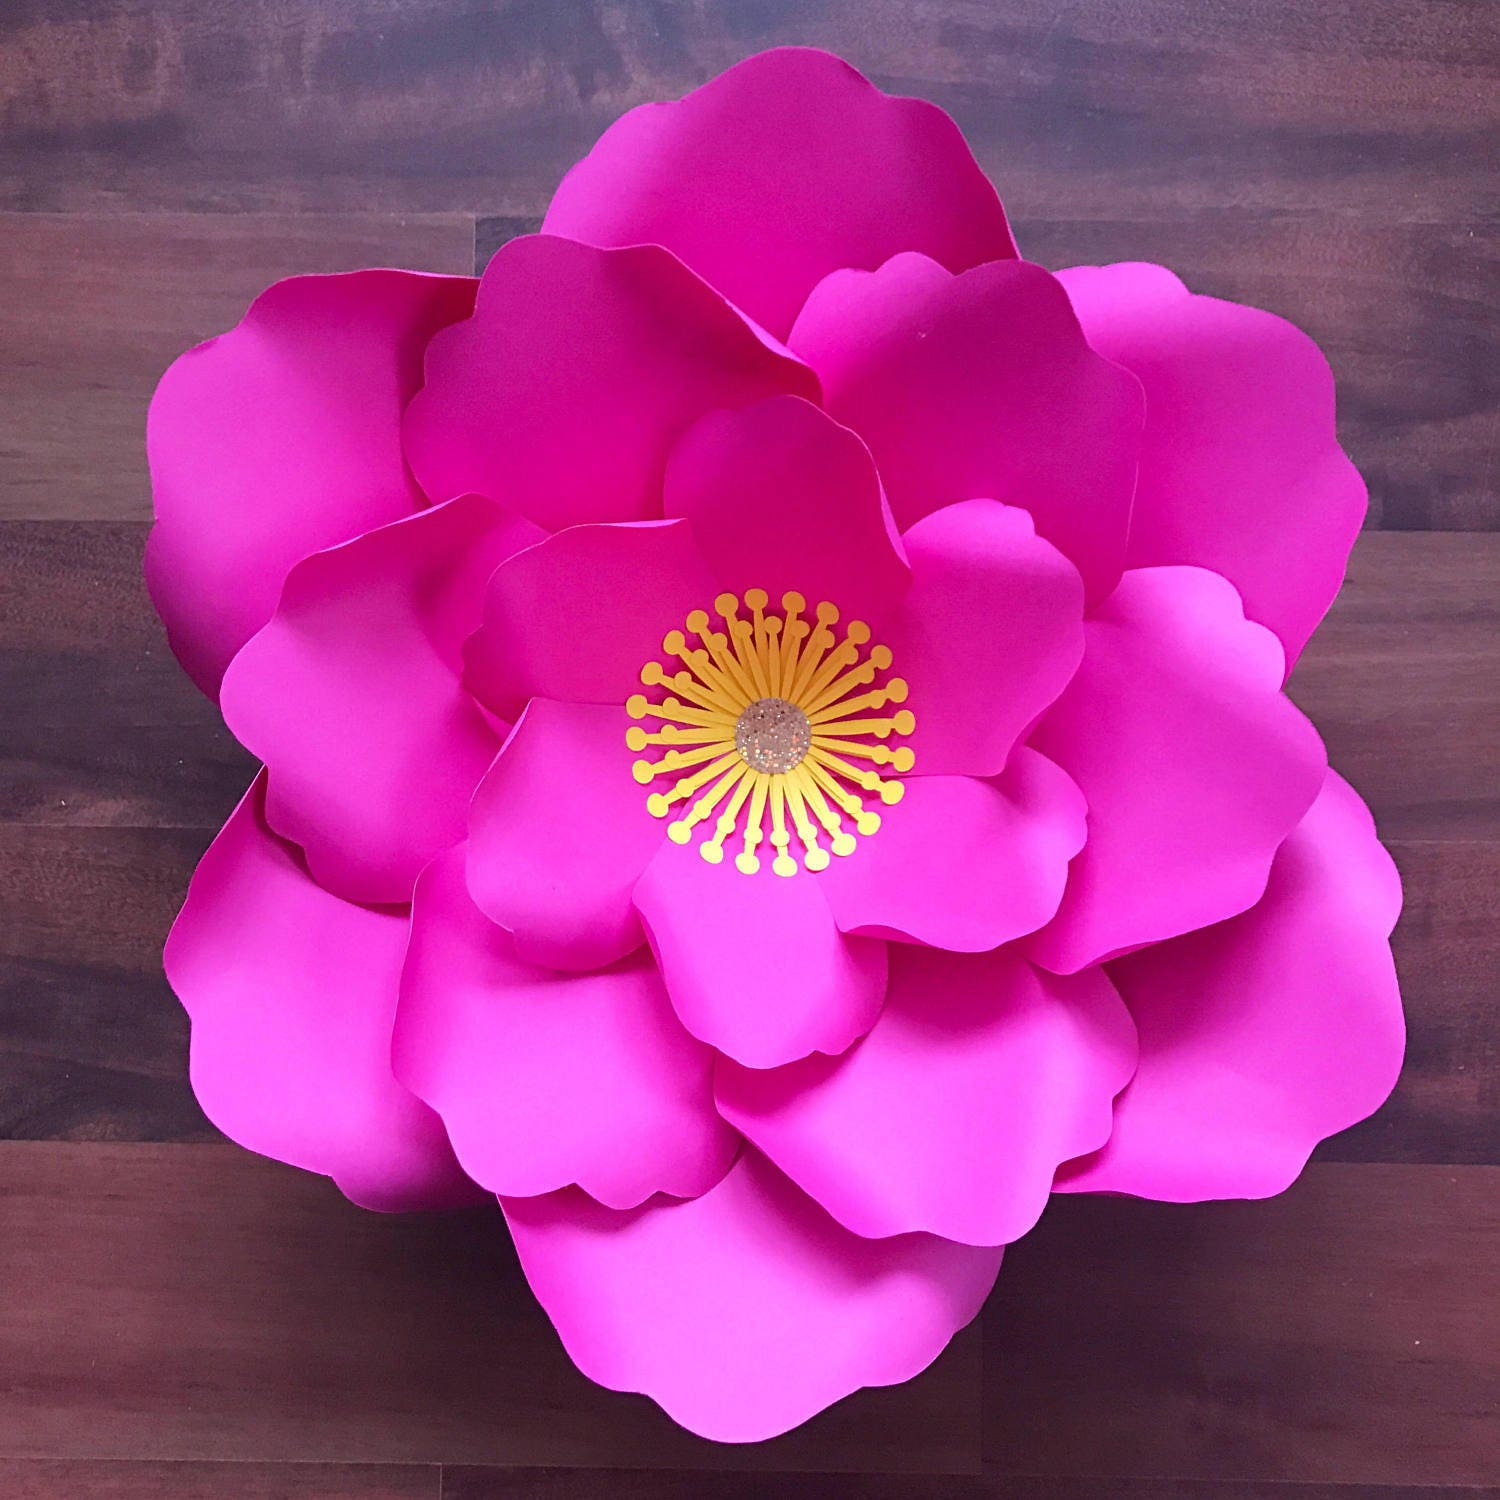 svg png dxf petal 21 paper flowers template 6 sizes base 5 sizes flat center digital file for